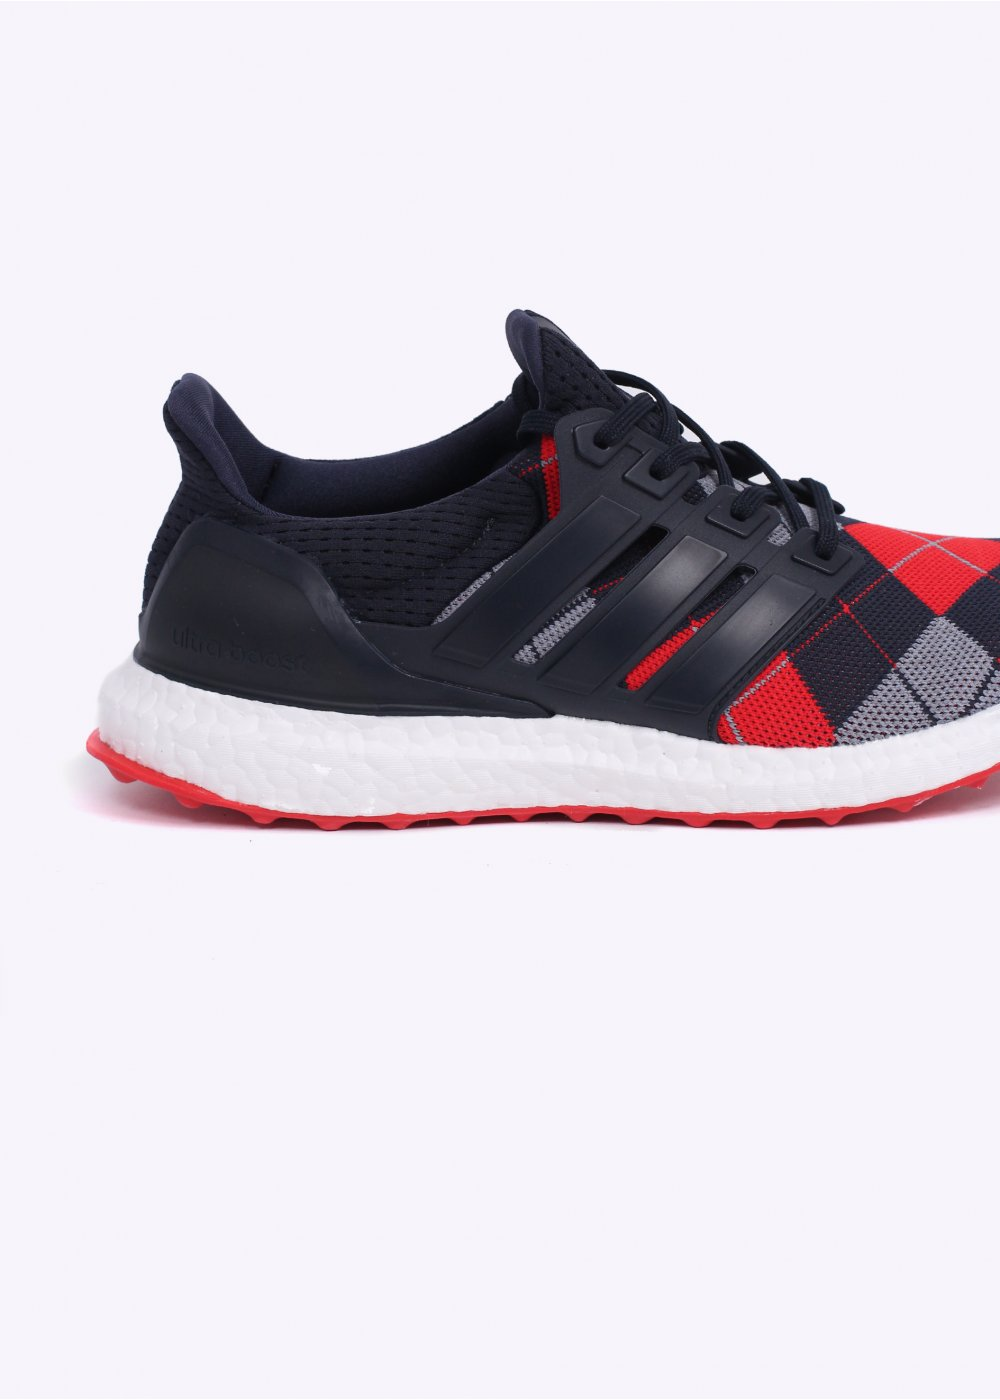 Adidas Originals X Kris Van Assche Ultra Boost Trainers